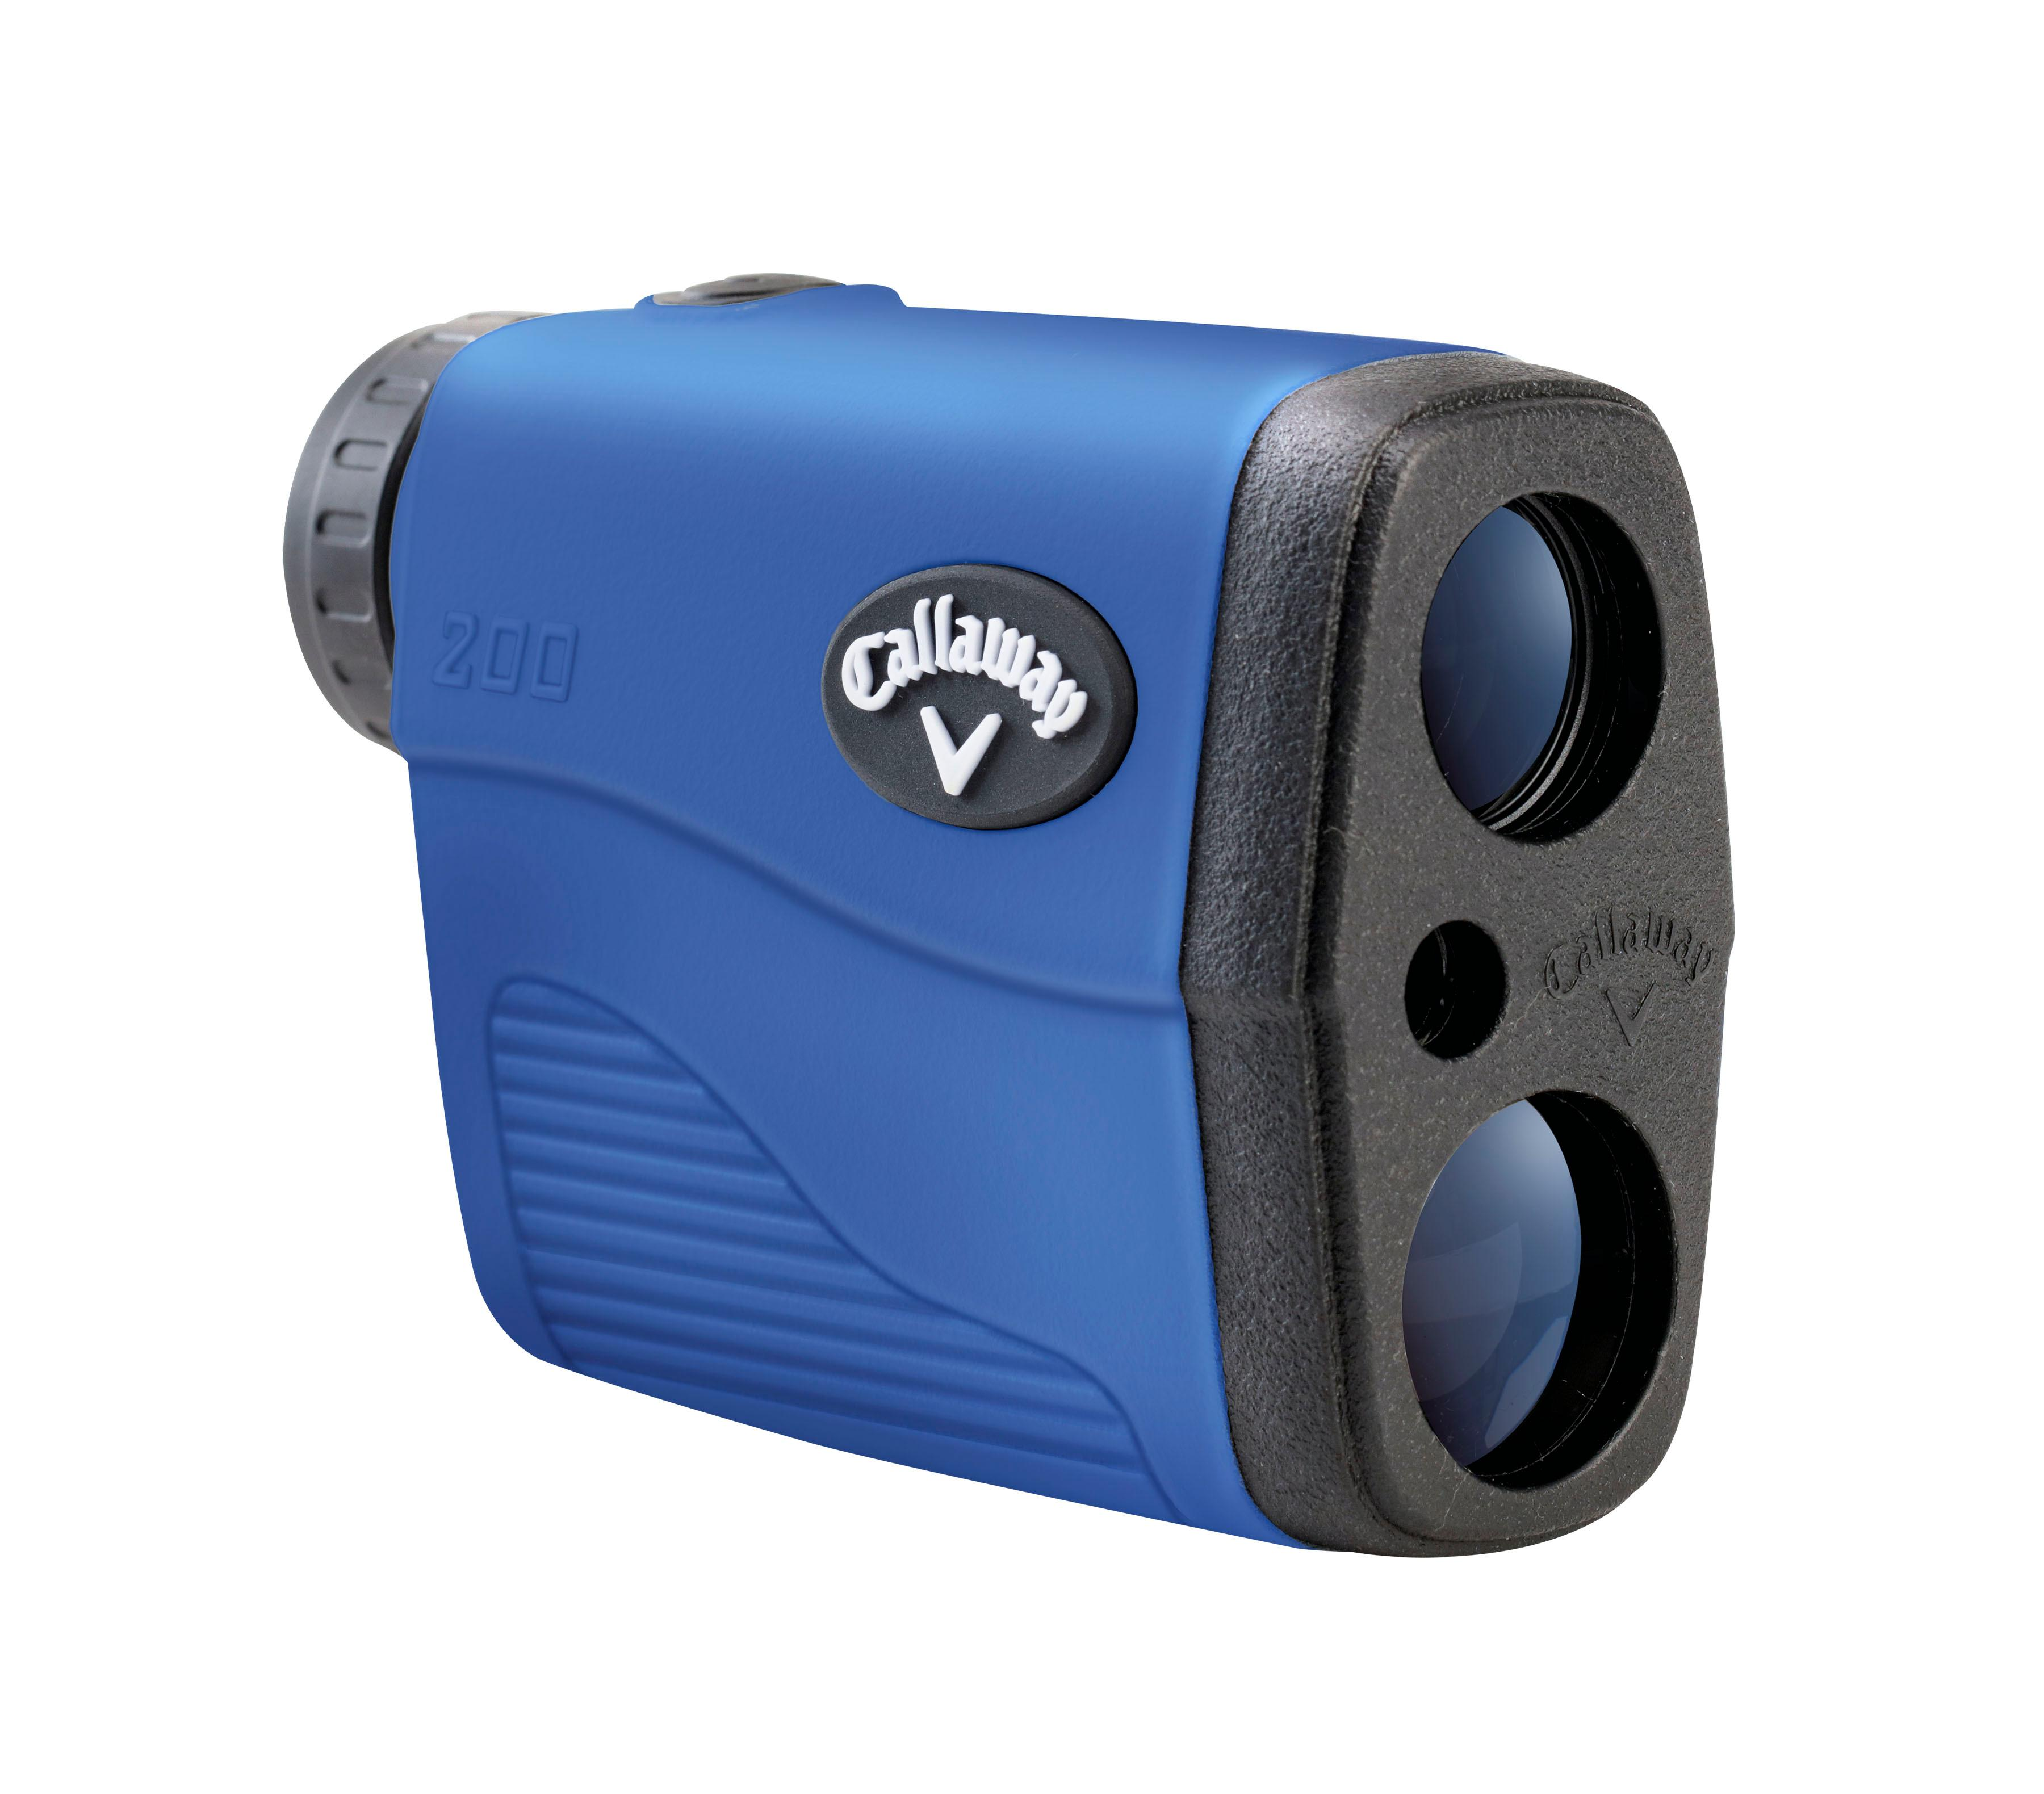 Amazoncom Callaway 200 Laser Rangefinder Sports Outdoors